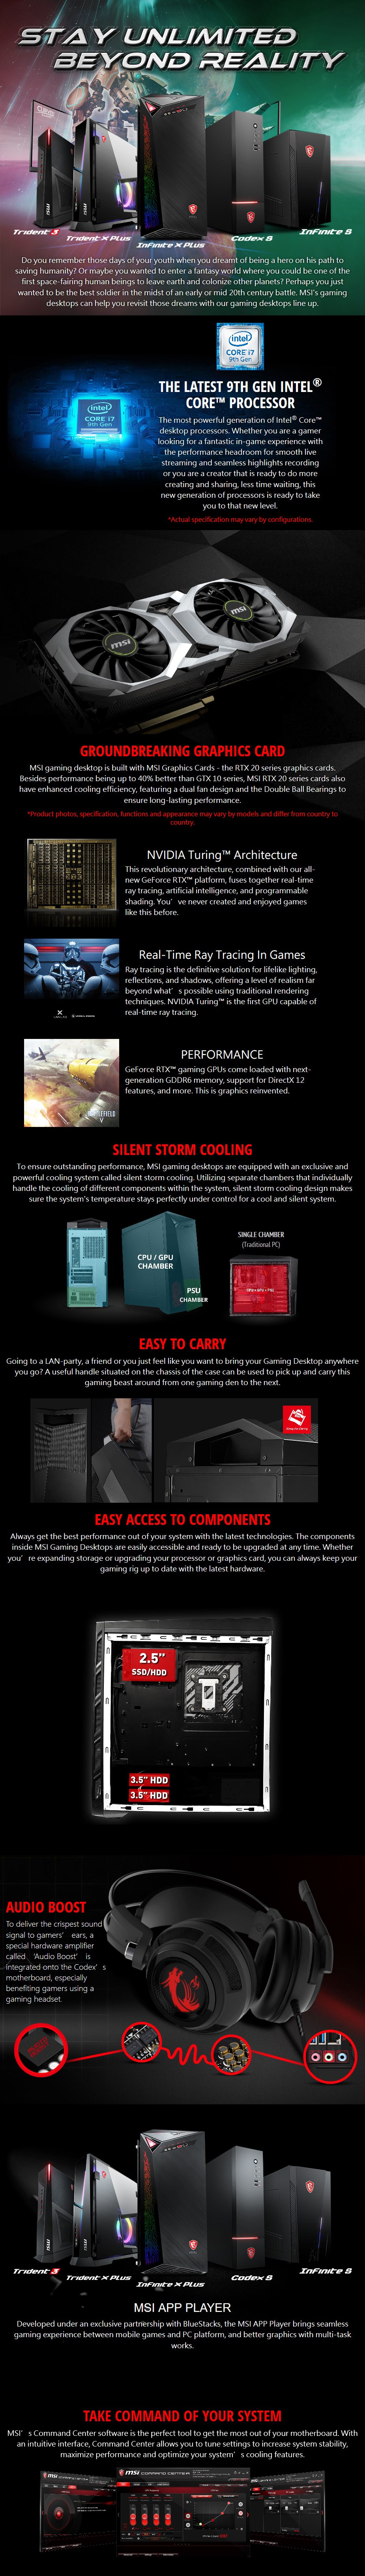 MSI Infinite Mid-Tower Gaming PC i5-9400F 8GB 256GB RTX2060 Win10H - Desktop Overview